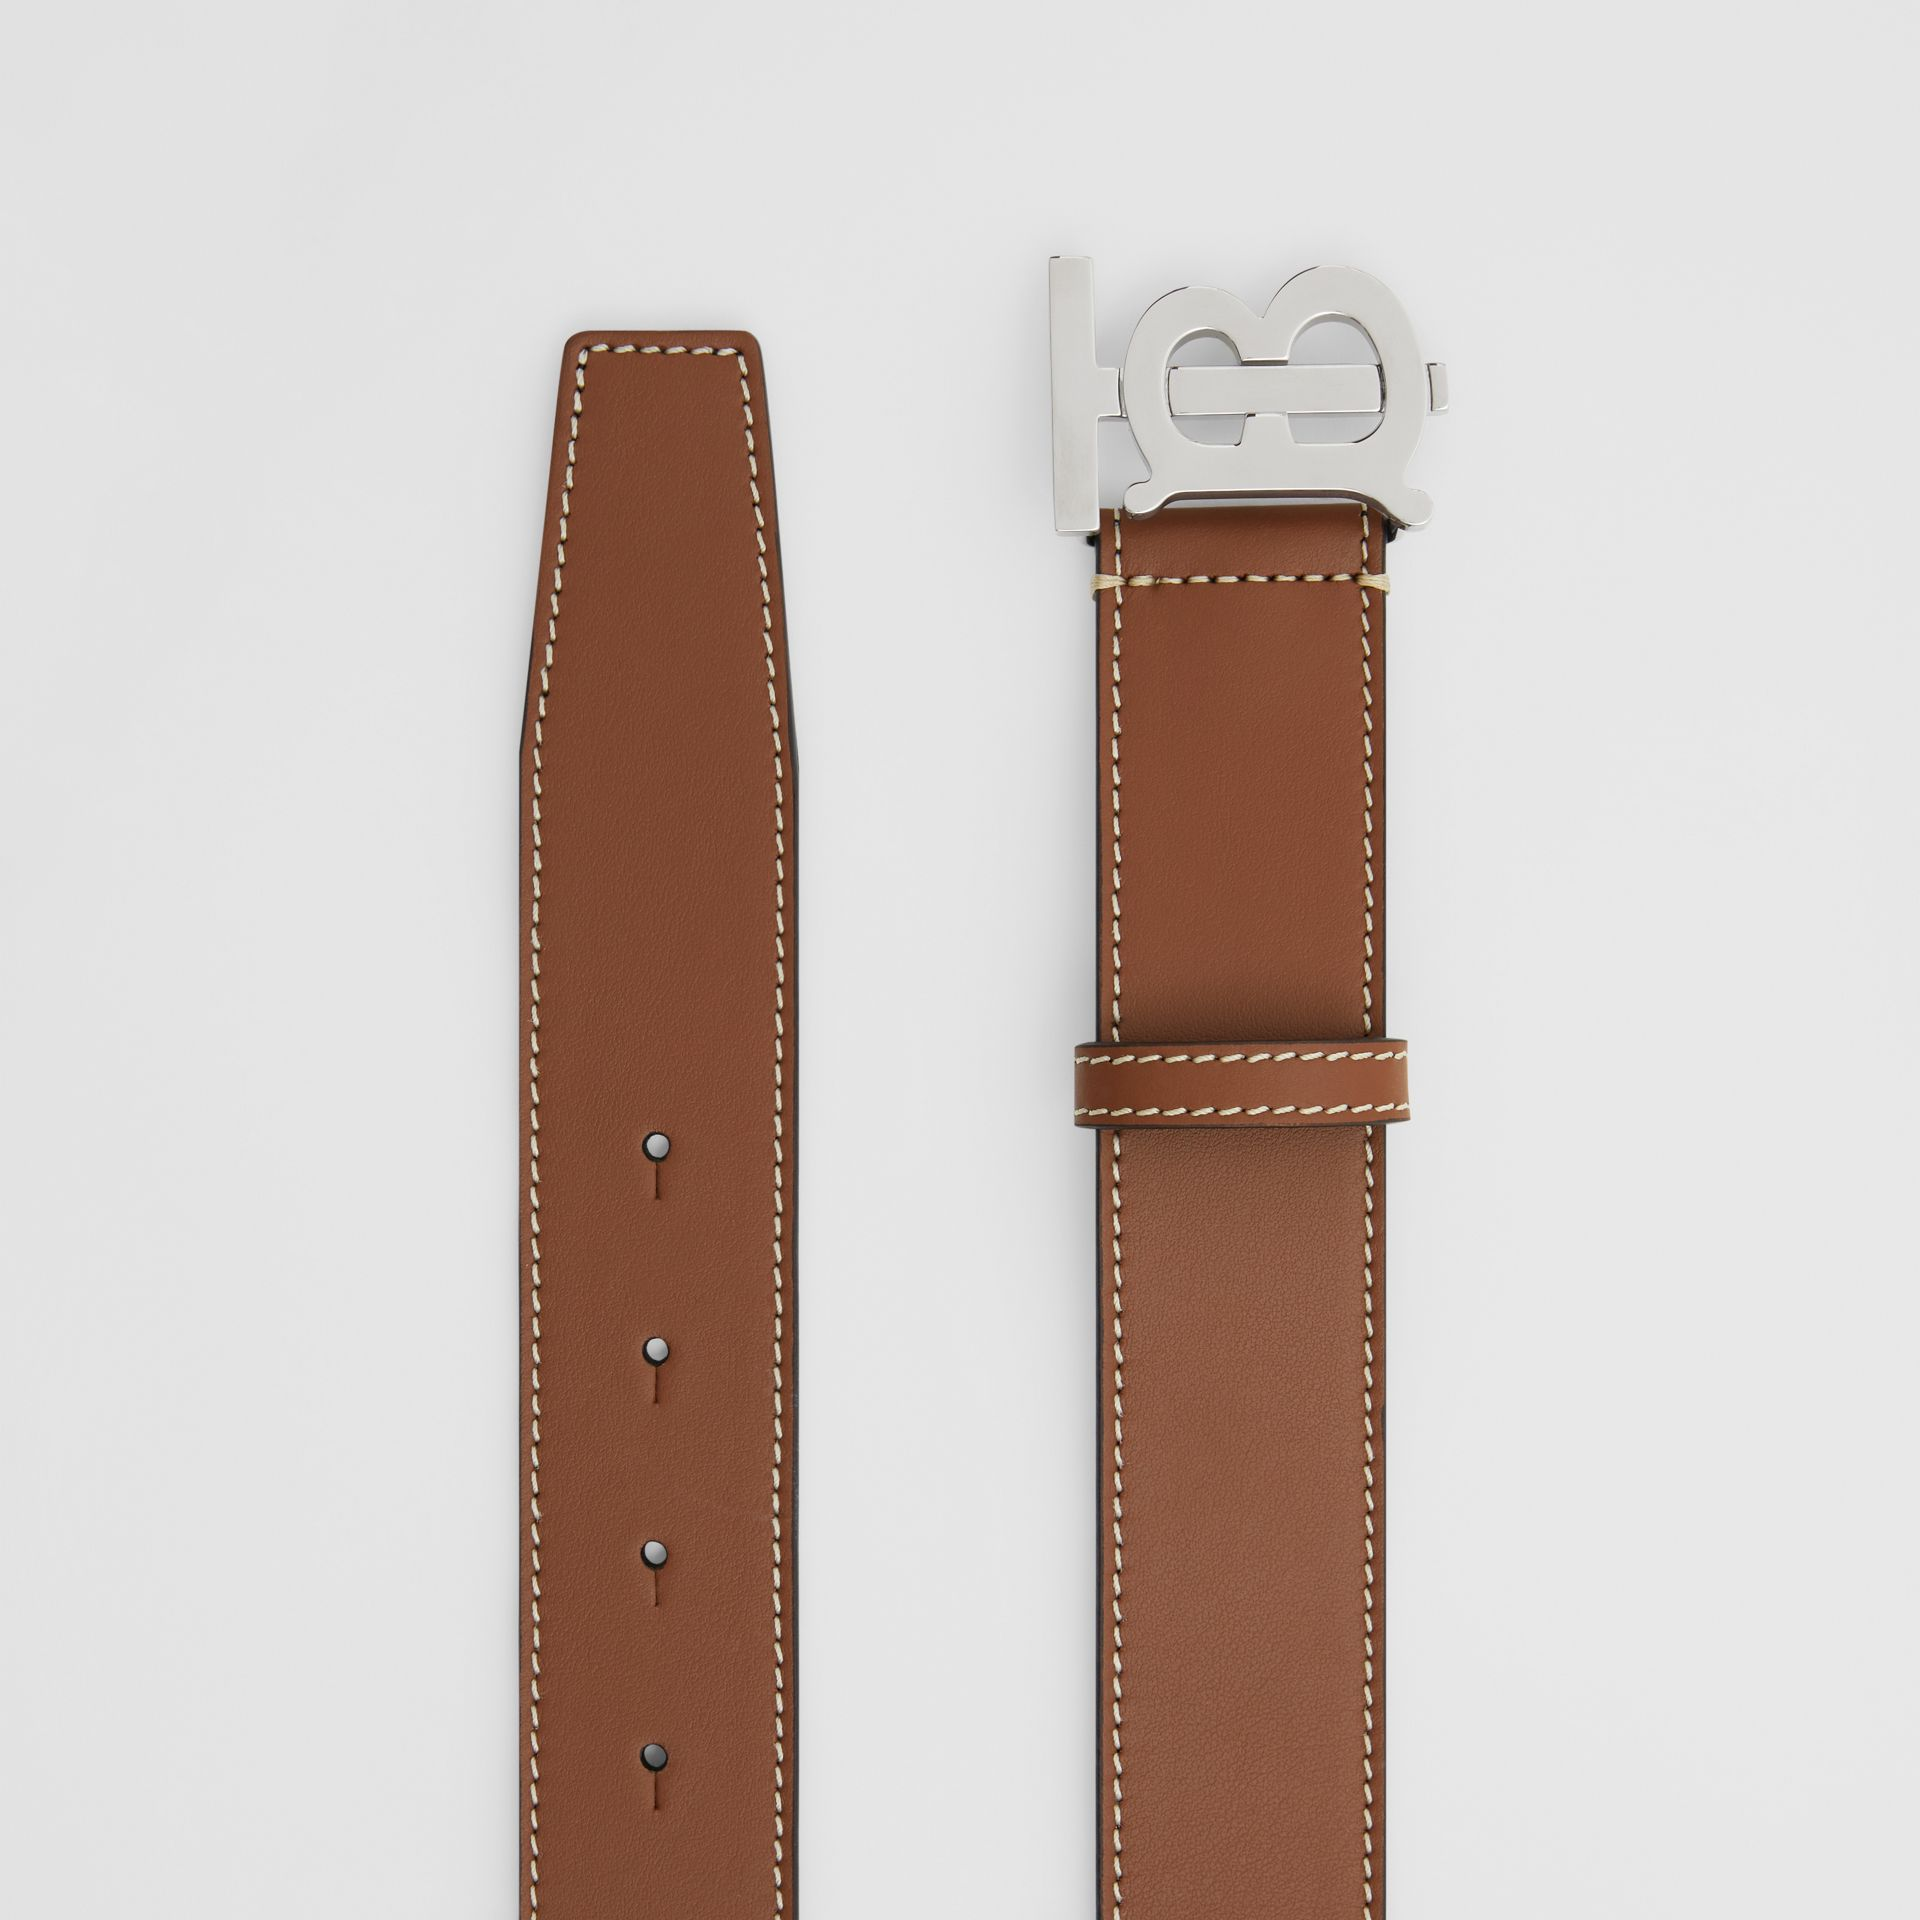 Monogram Motif Topstitched Leather Belt in Tan - Men | Burberry - gallery image 5